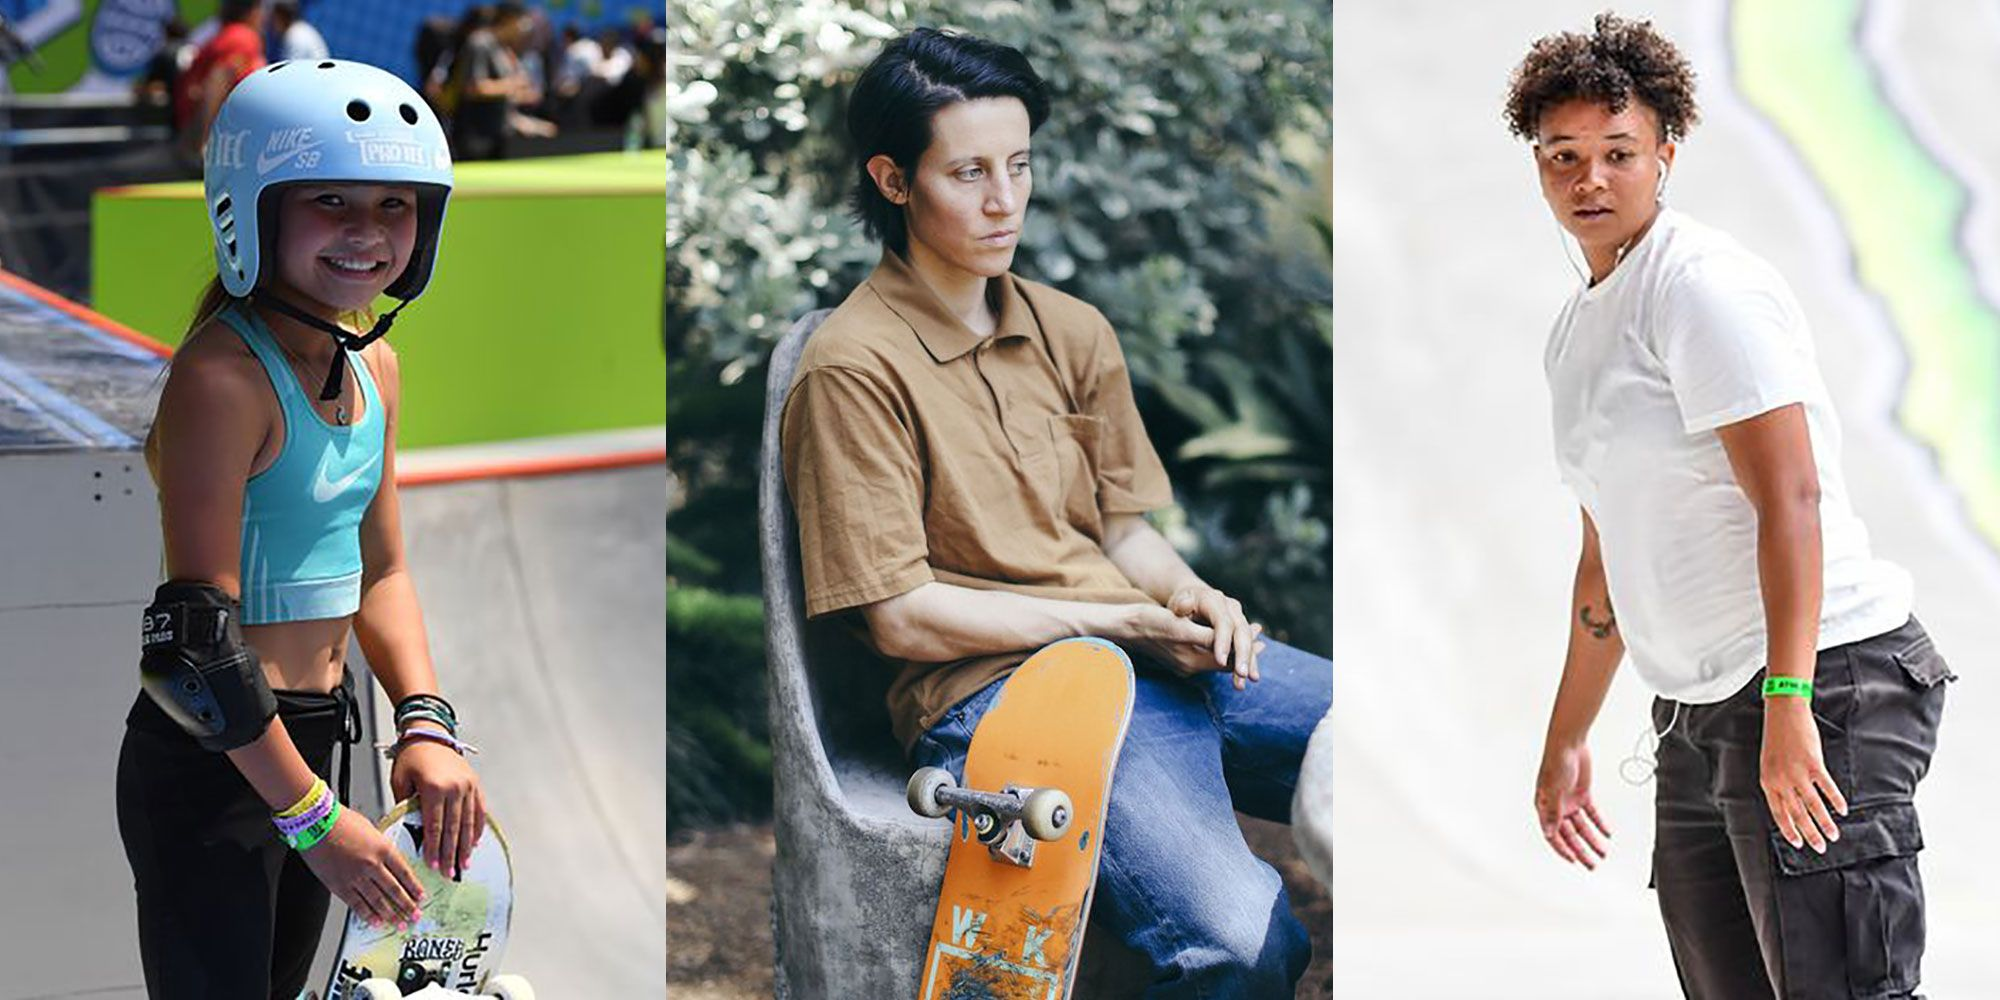 5 Top Female Skateboarders to Know - Olympic 2020 Hopeful Interviews